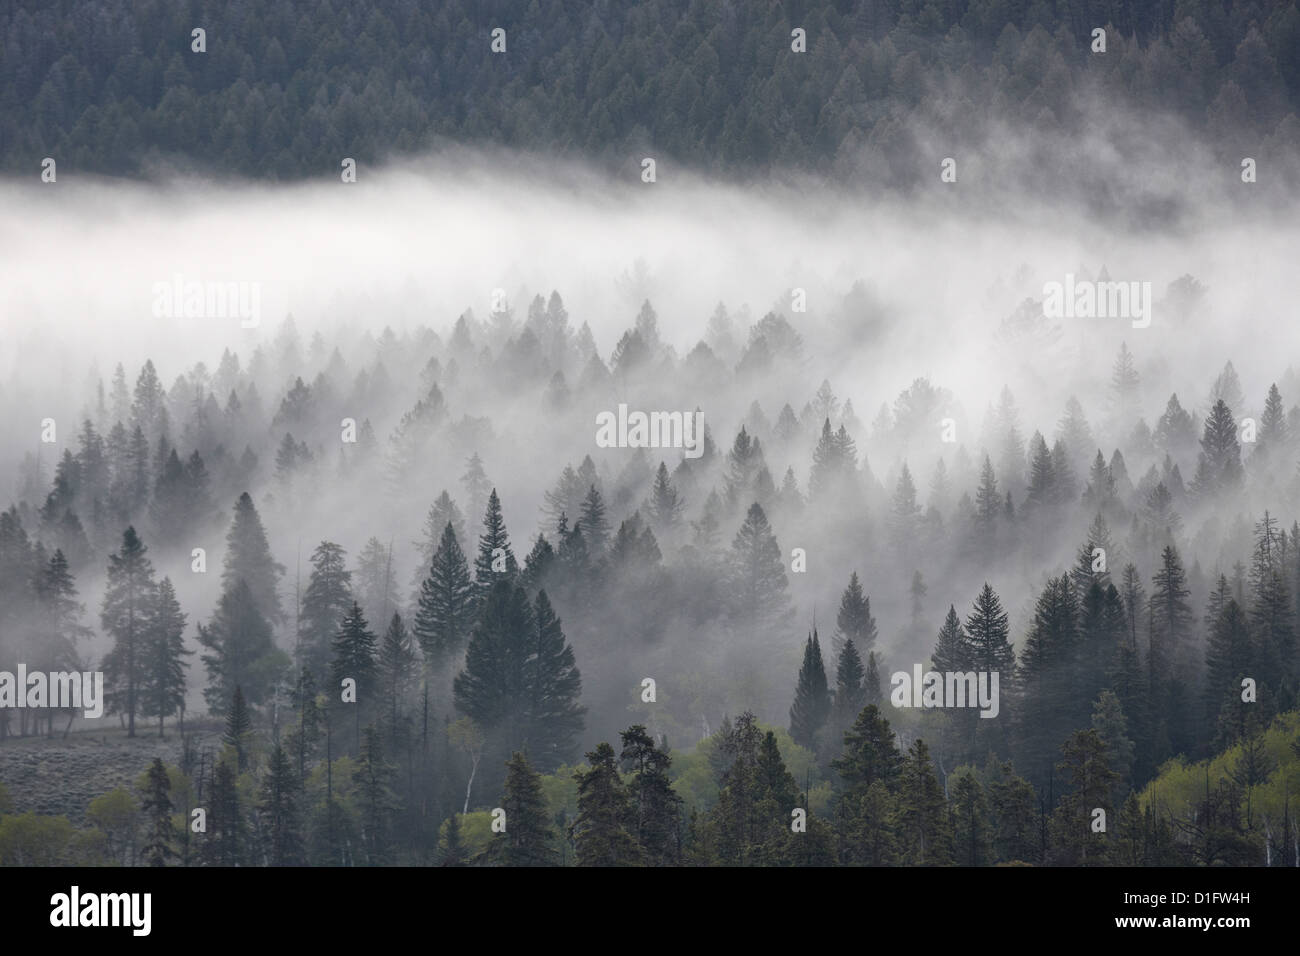 Fog mingling with evergreen trees, Yellowstone National Park, Wyoming, United States of America, North America - Stock Image